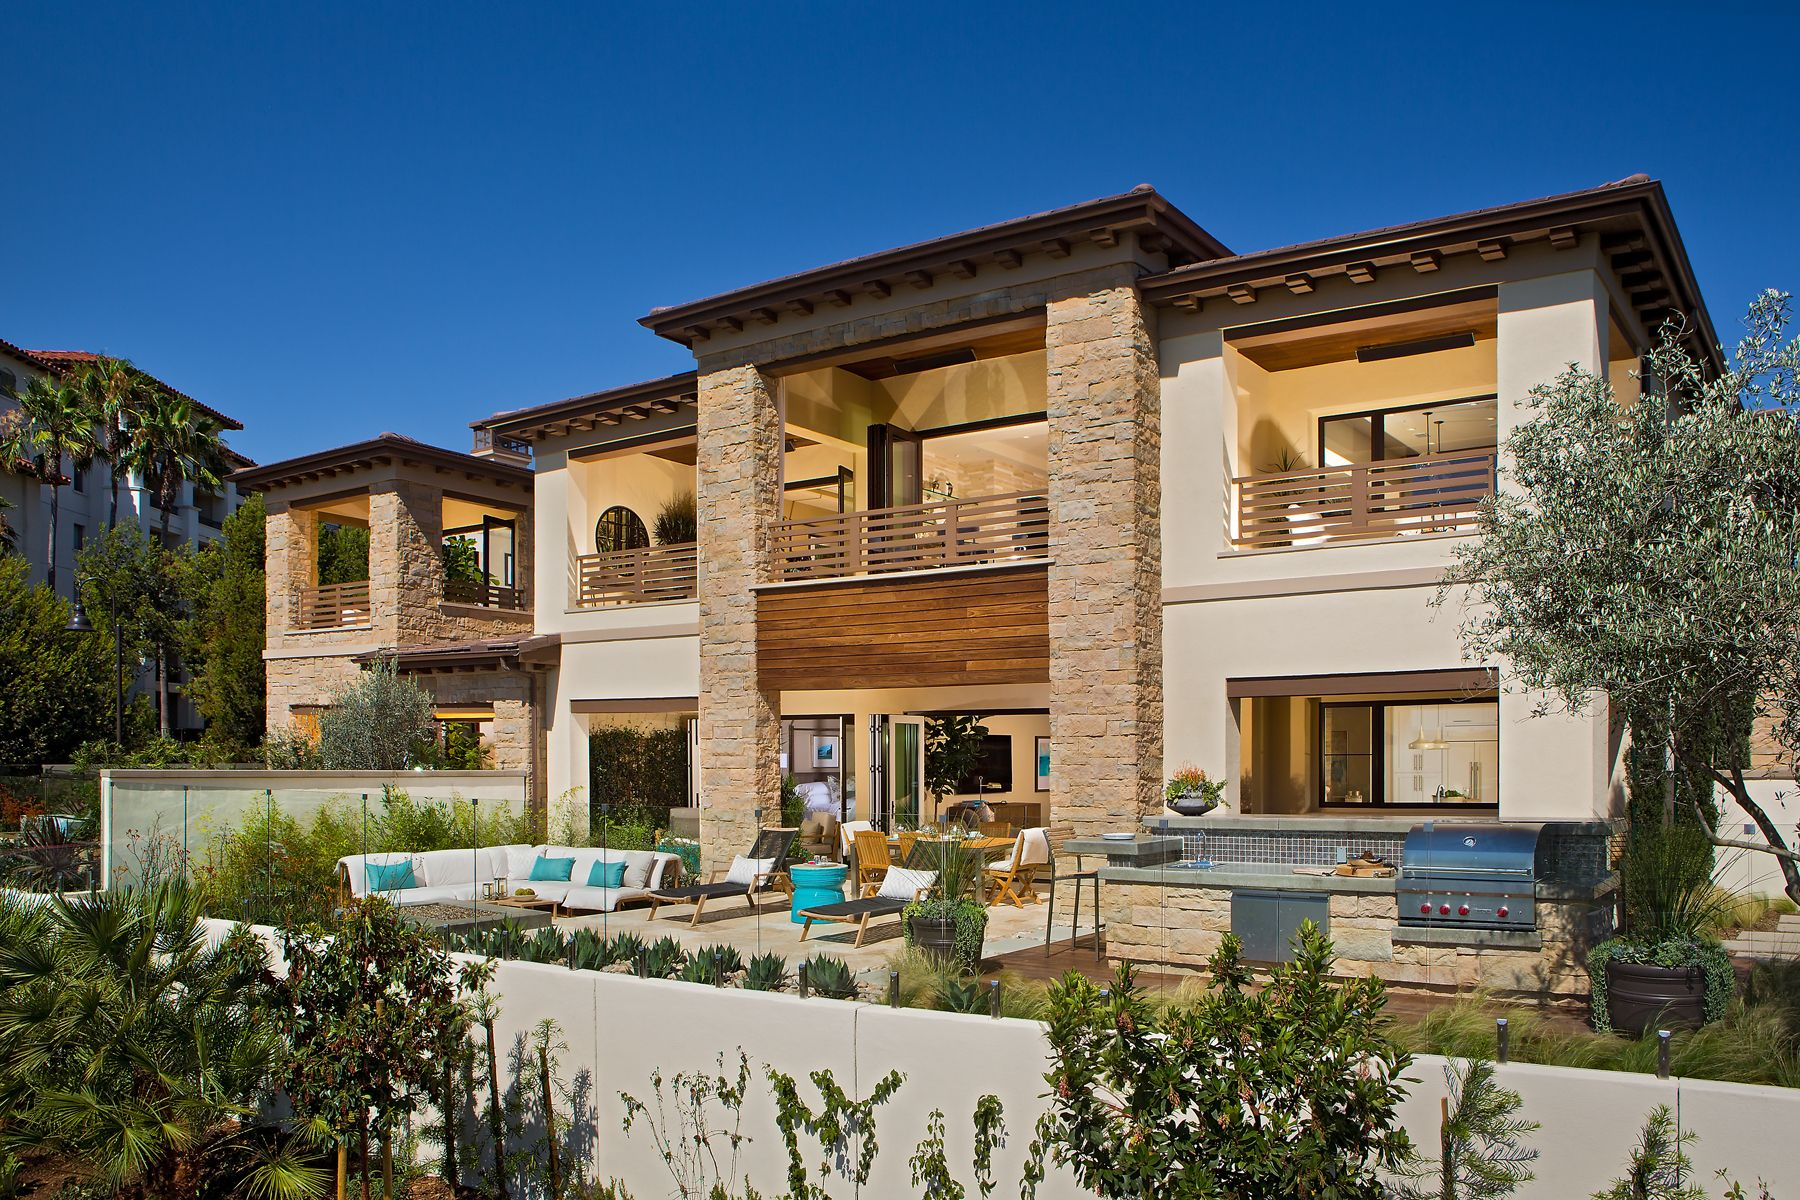 Home grill design bilder plan  overall rear at the grand monarch in dana point  the grand